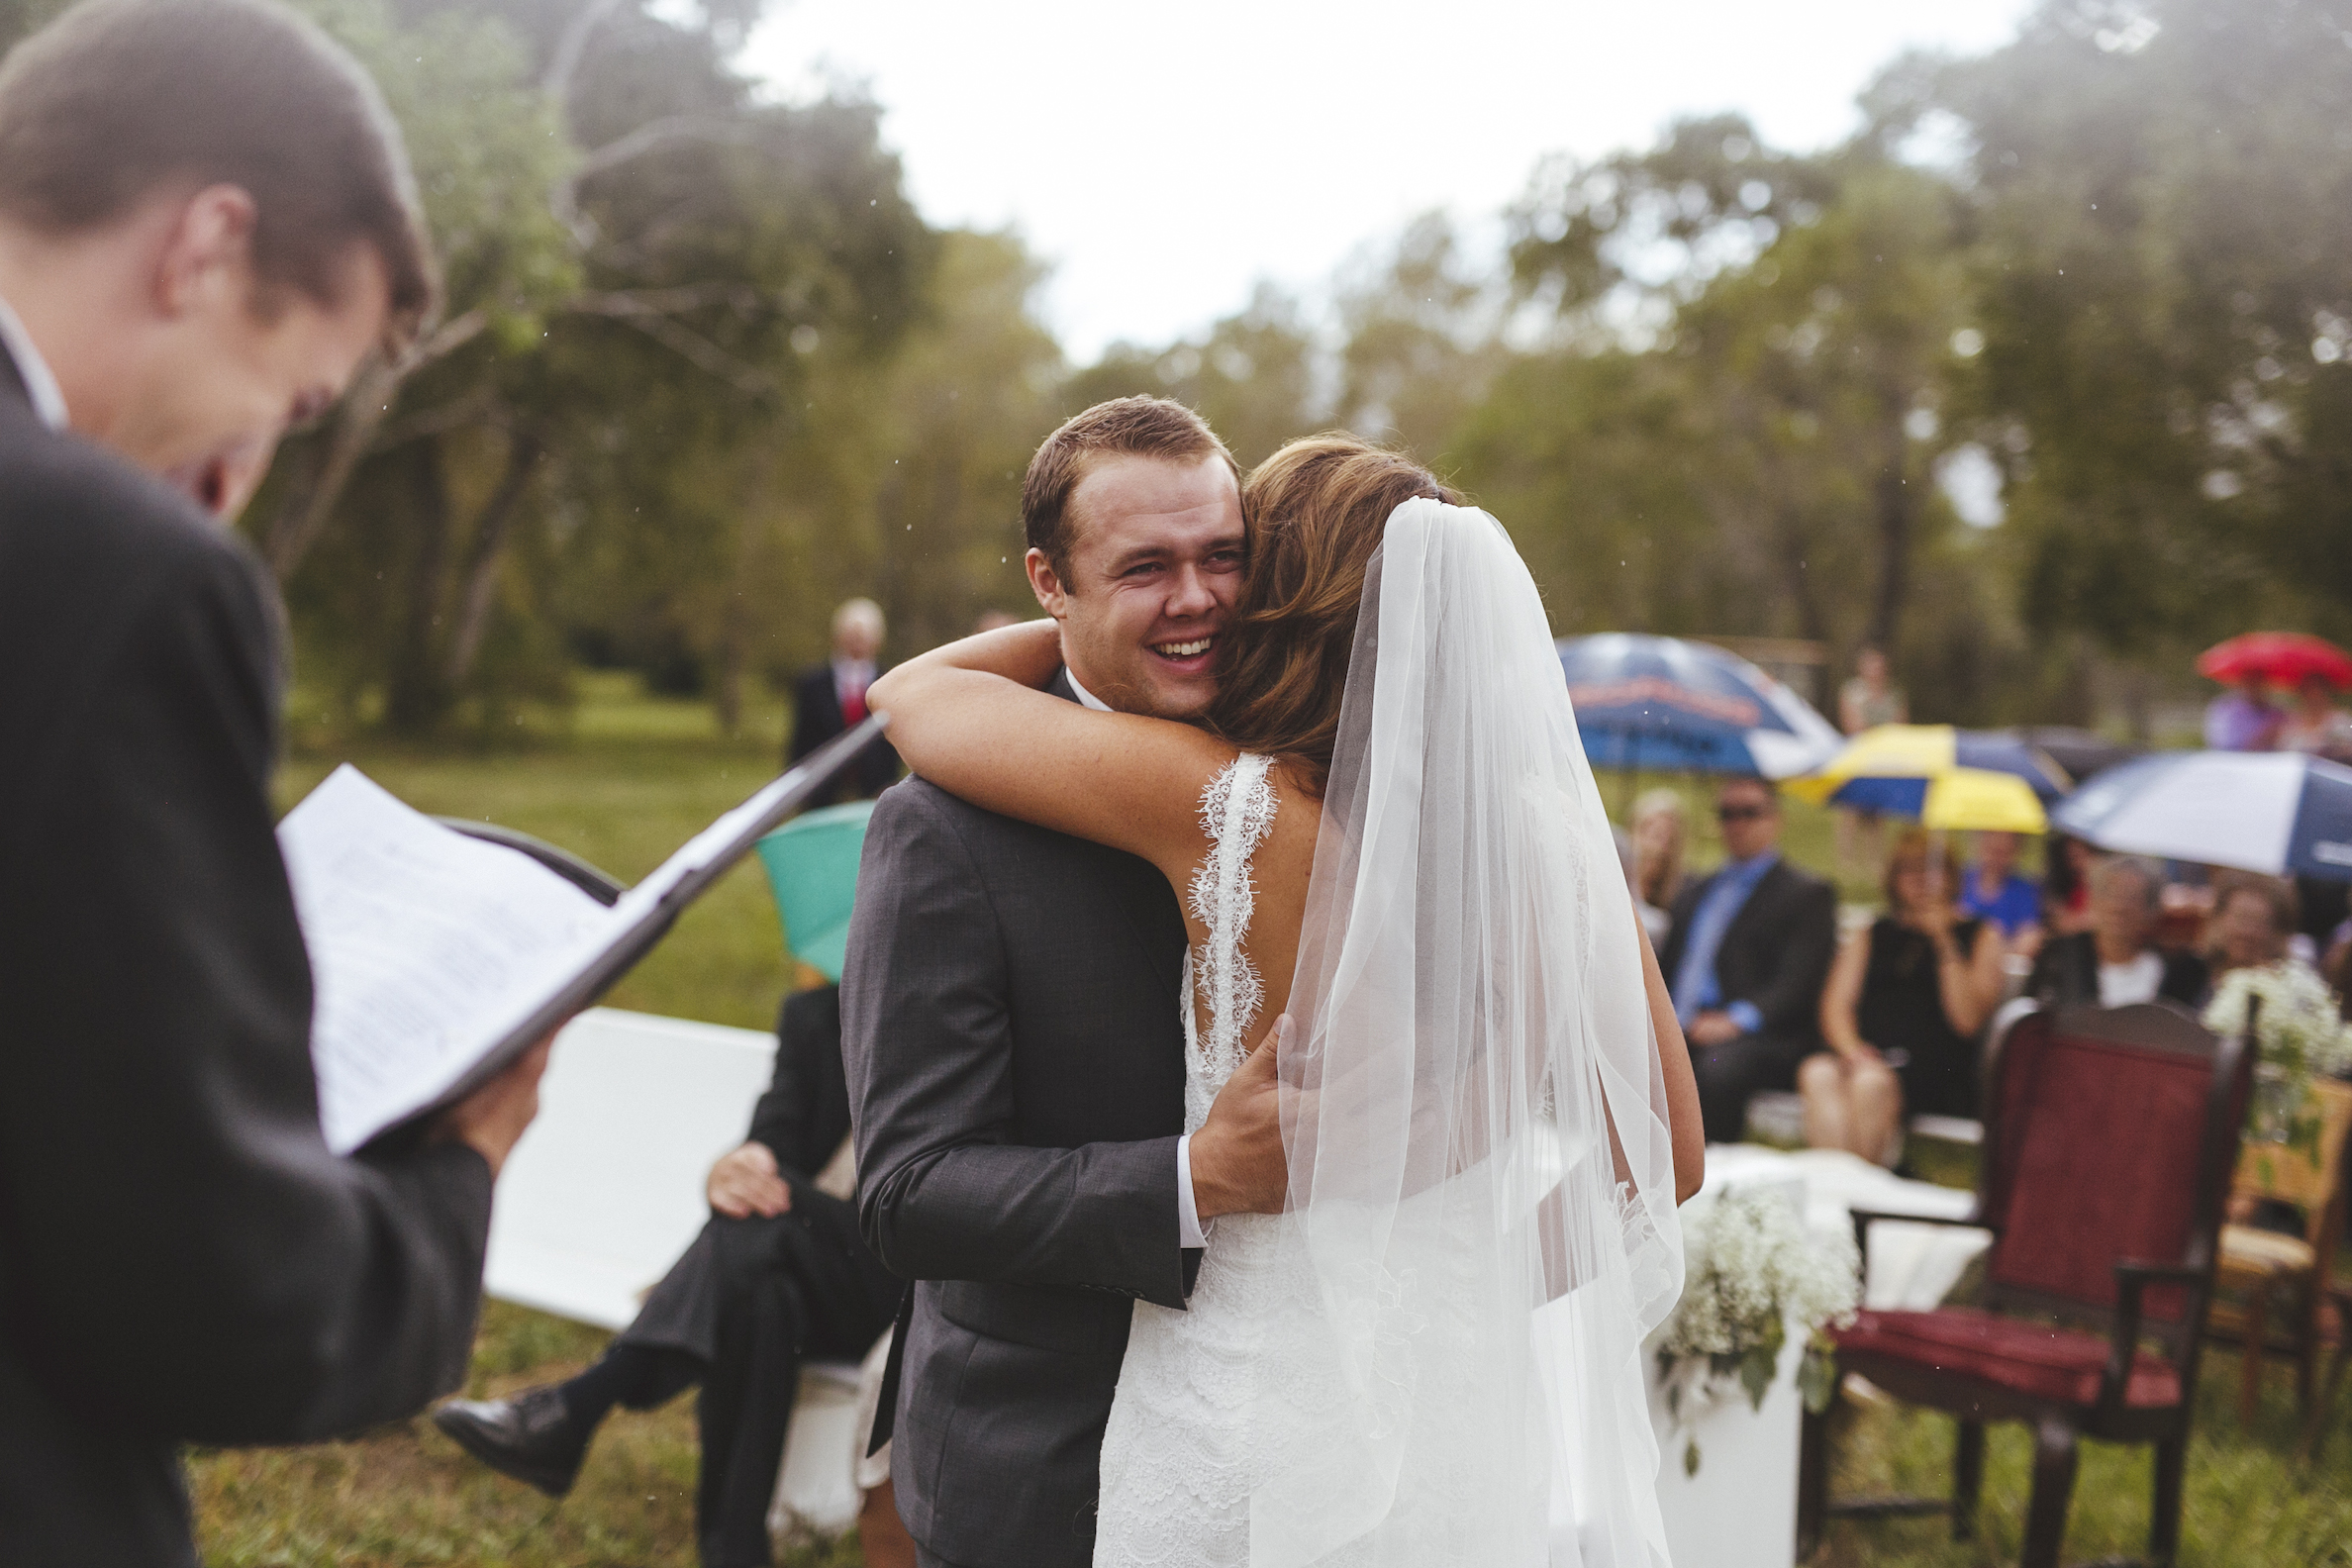 bestaustinweddingphotographer14194.JPG